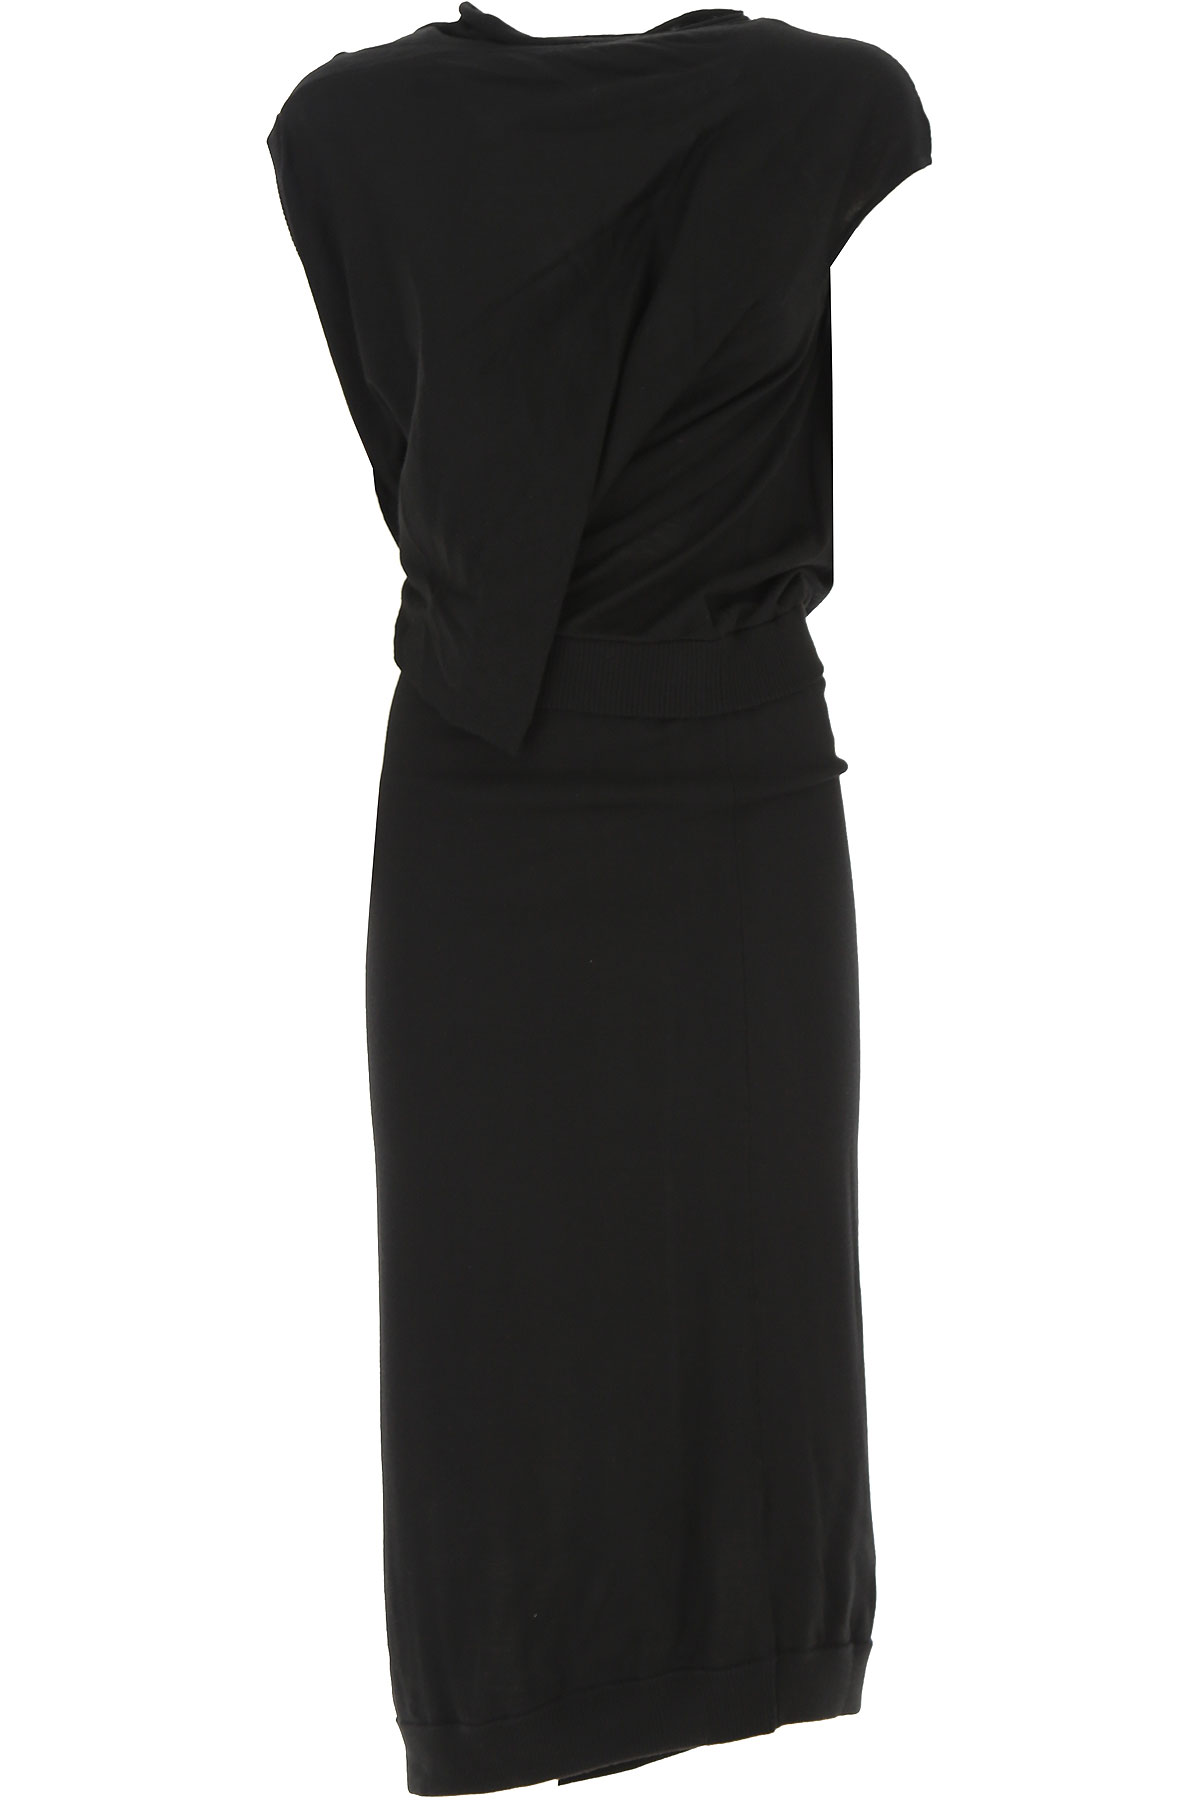 Alexander McQueen McQ Dress for Women, Evening Cocktail Party On Sale, Black, Wool, 2019, 2 4 8